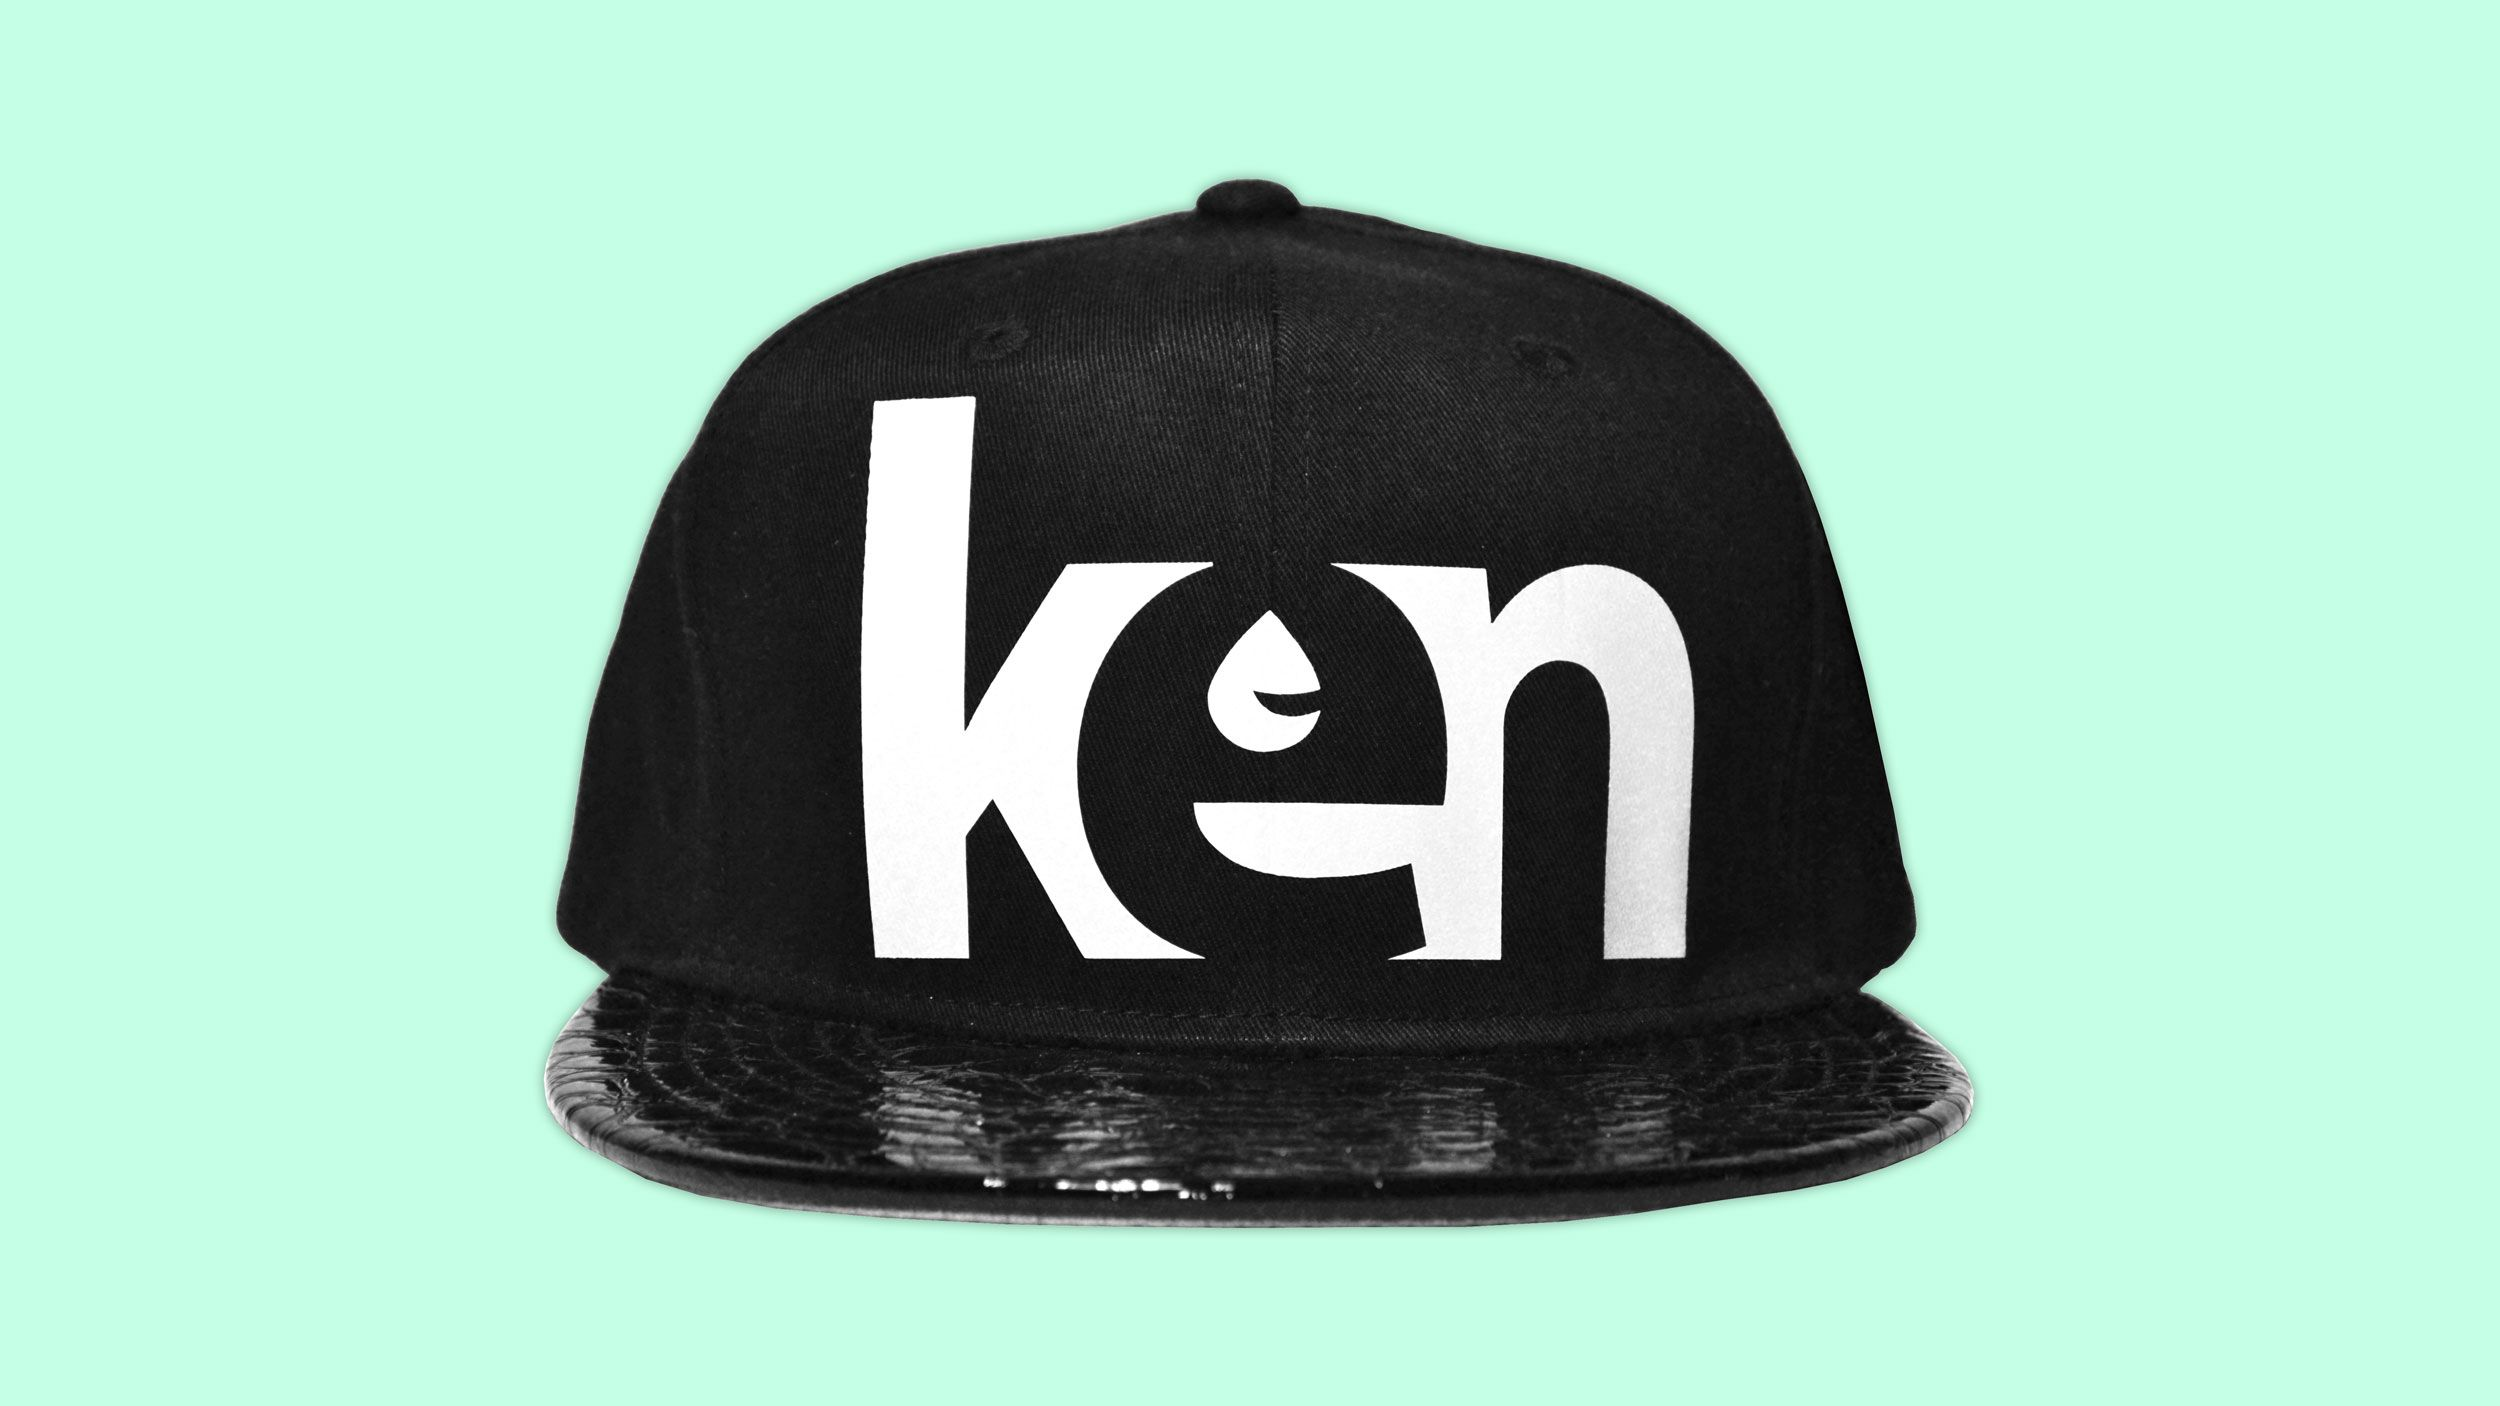 Ken theater, Pet met logo, Mixus studio